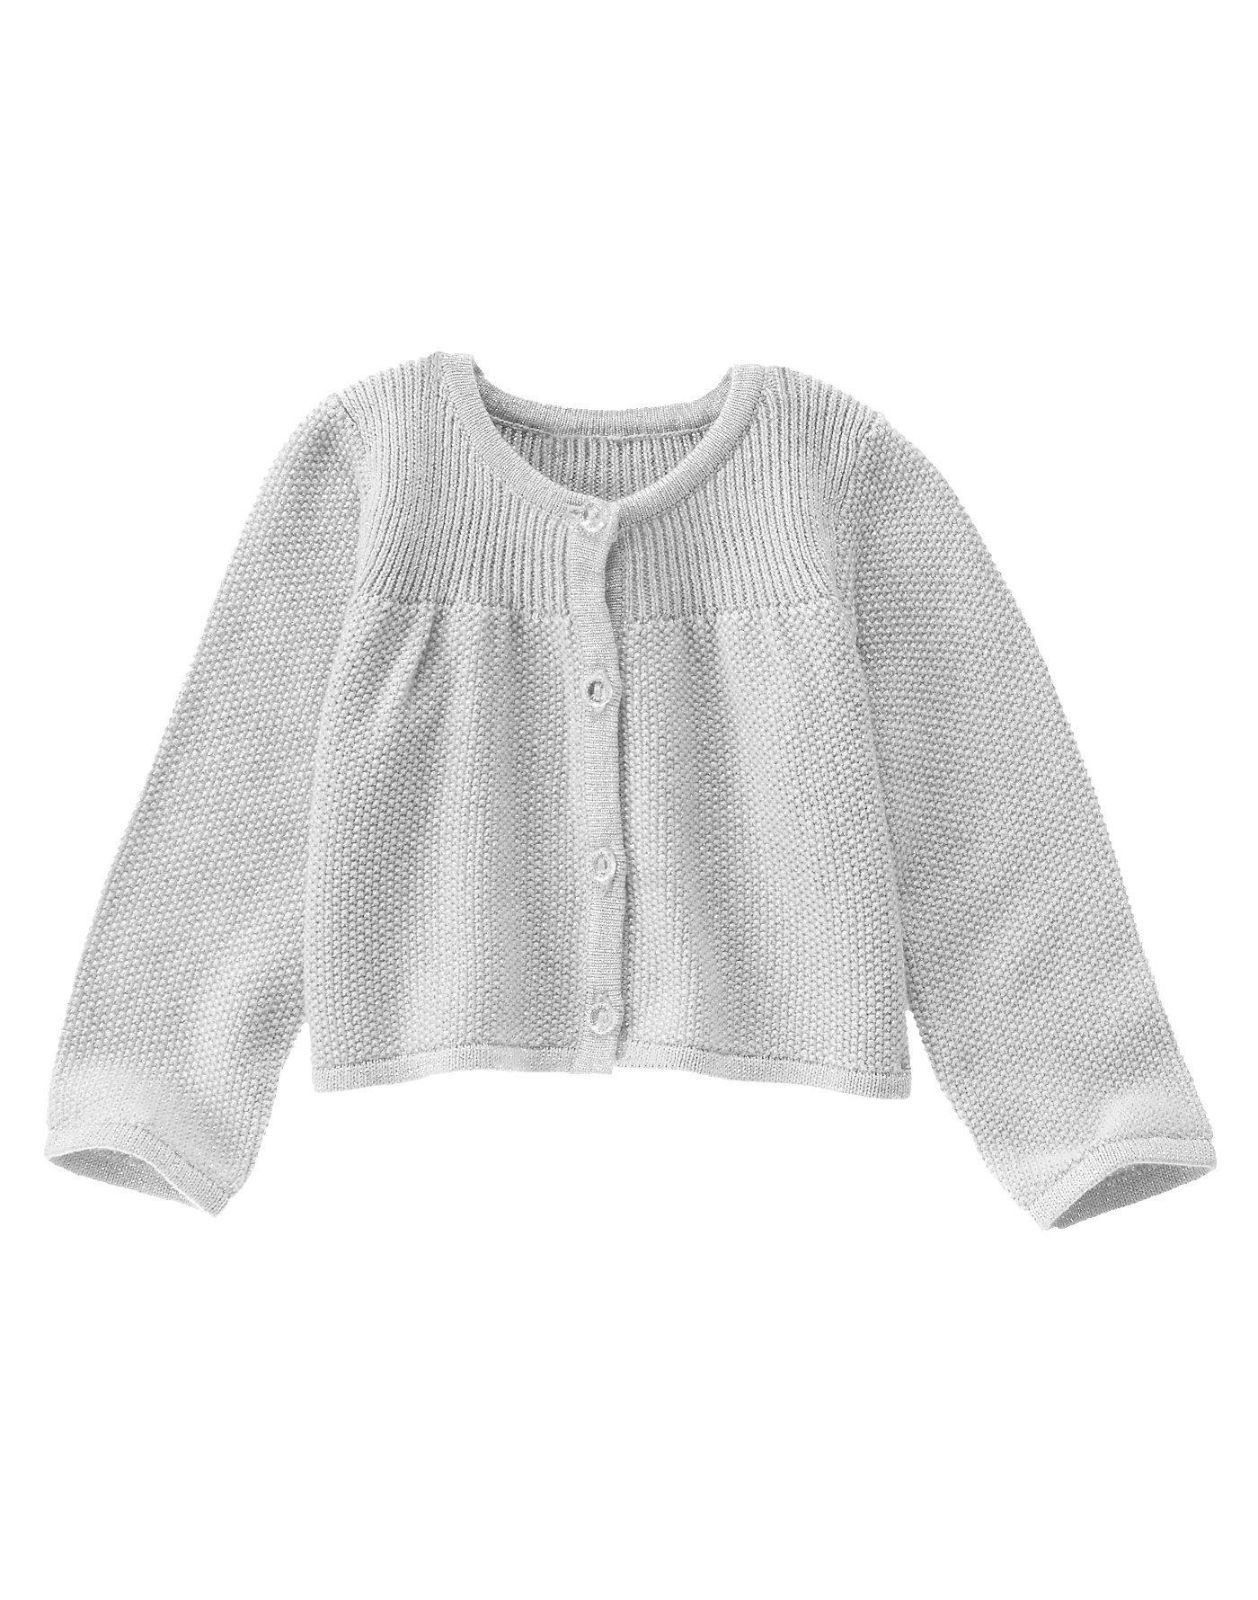 b29bf4fe0a0 NWT Gymboree BELLES AND BOWTIES Baby Girls Silver Holiday Cardigan Sweater  3-6M